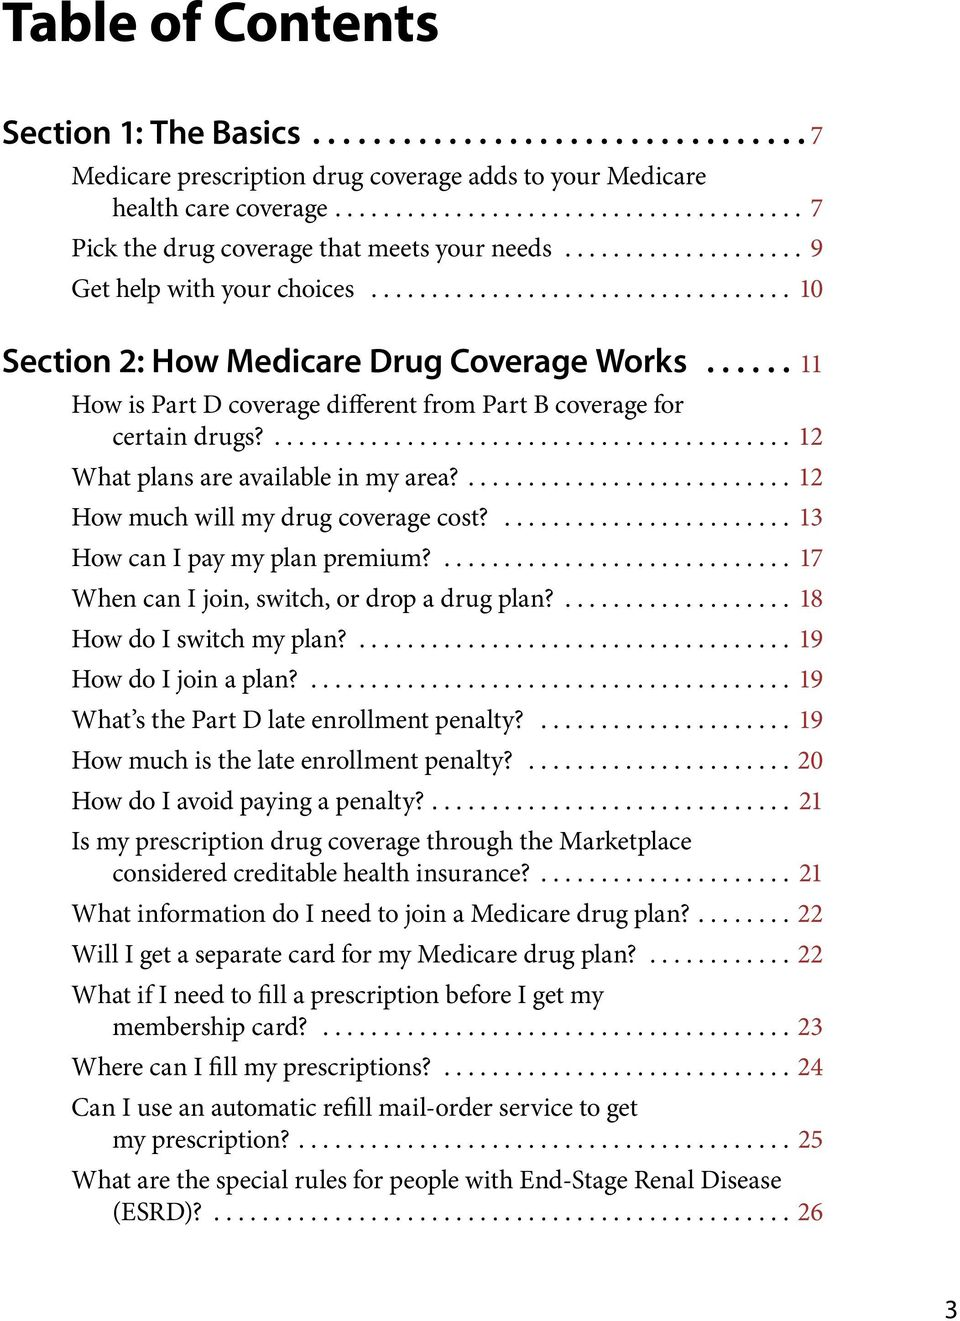 ... 12 How much will my drug coverage cost?... 13 How can I pay my plan premium?... 17 When can I join, switch, or drop a drug plan?... 18 How do I switch my plan?... 19 How do I join a plan?